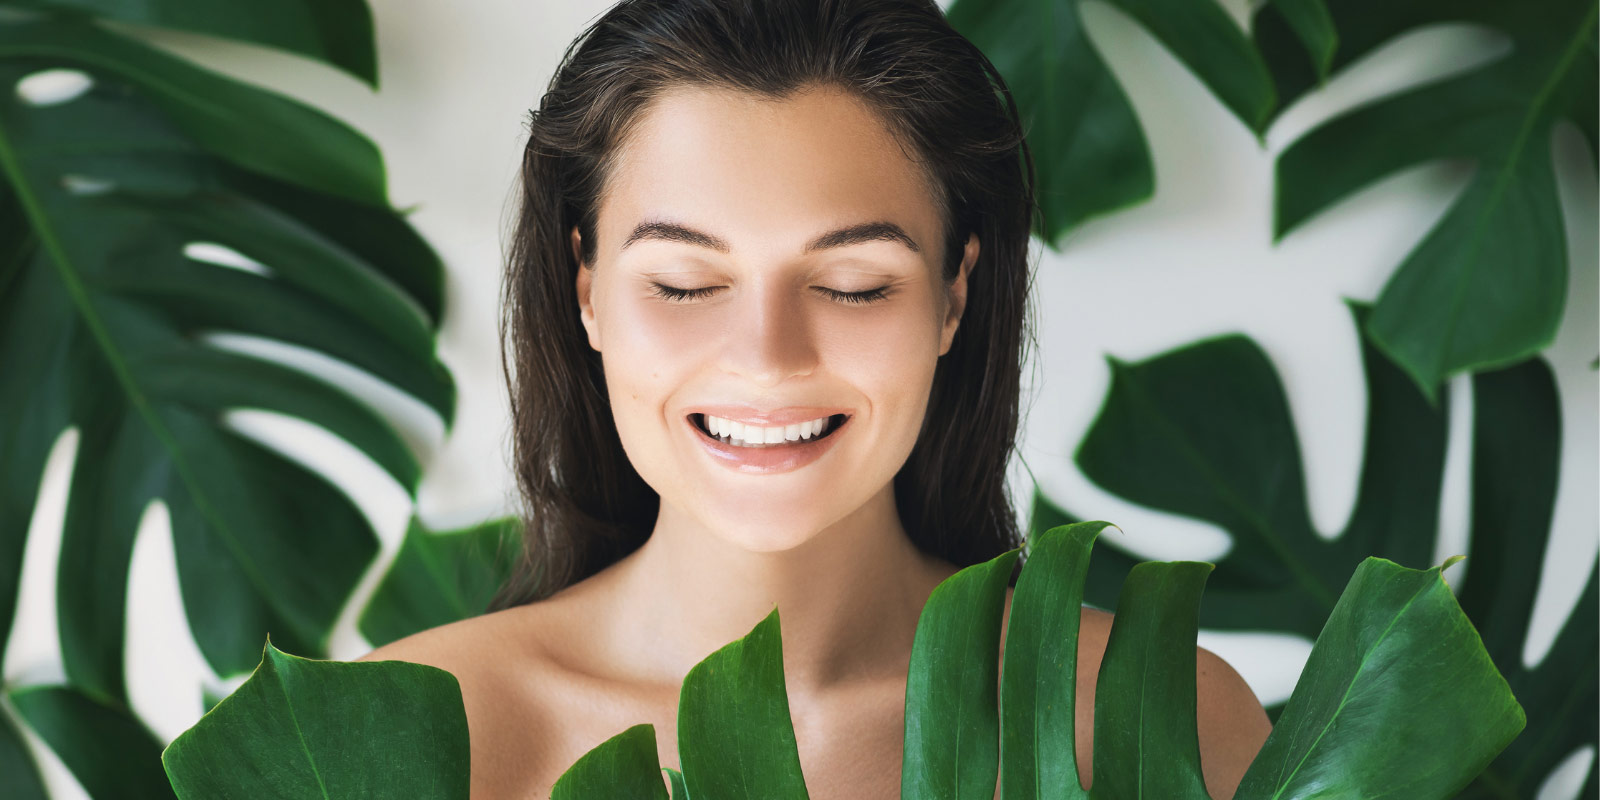 7 Skincare Mistakes to Avoid This Summer